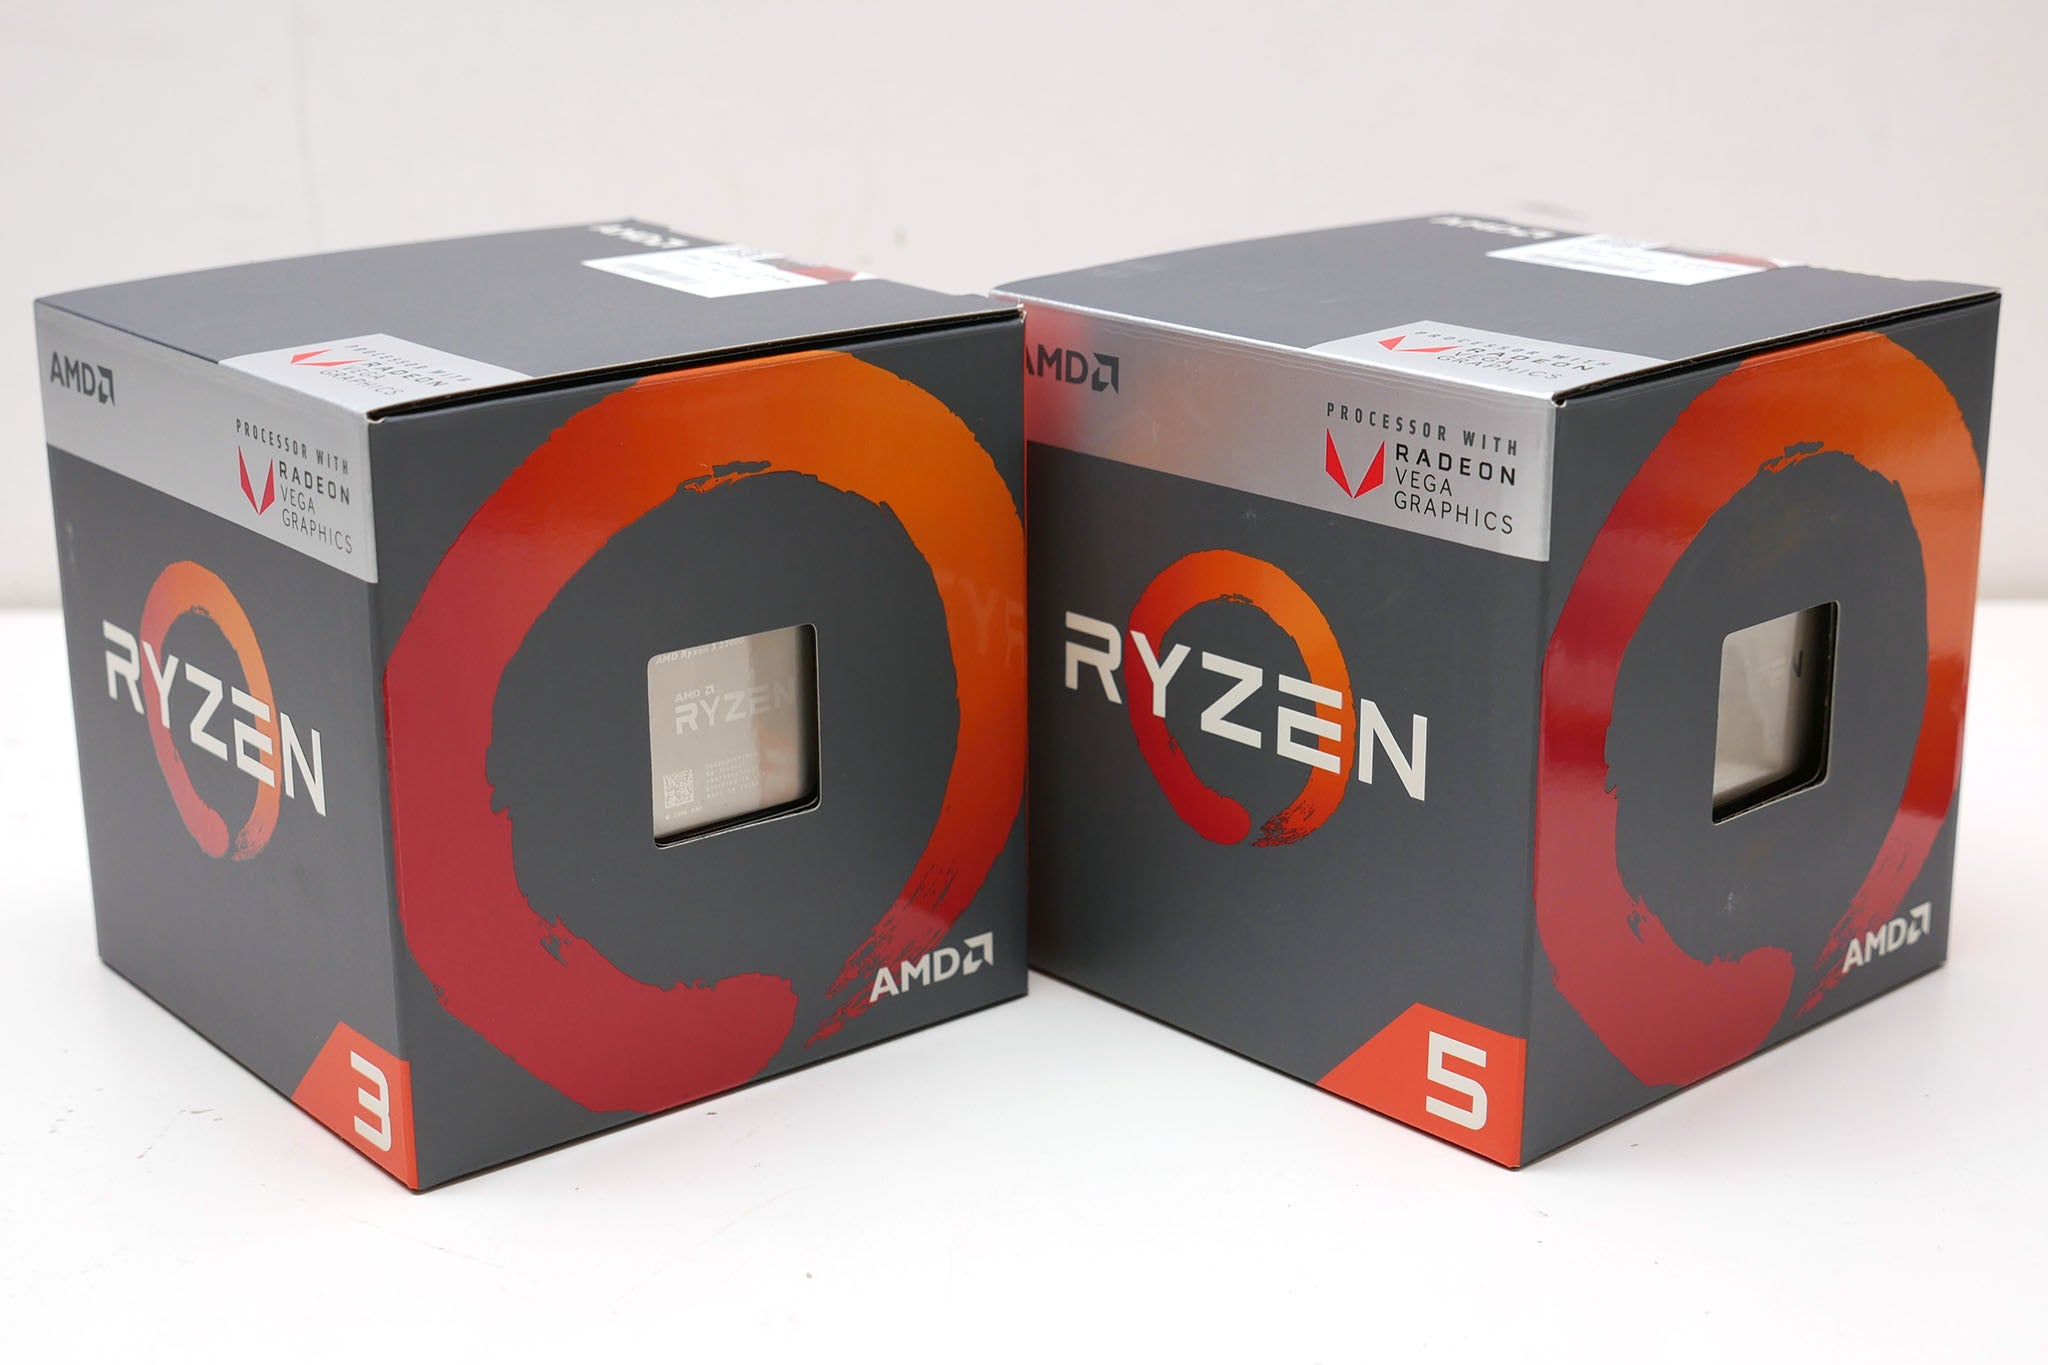 Amd Ryzen 5 2400g And 2200g Review Trusted Reviews With Radeon Rx Vega 11 Graphics They Combine Amds Cpu Technology Its But Also Bring Some Improvements Over The First Generation Of Cpus